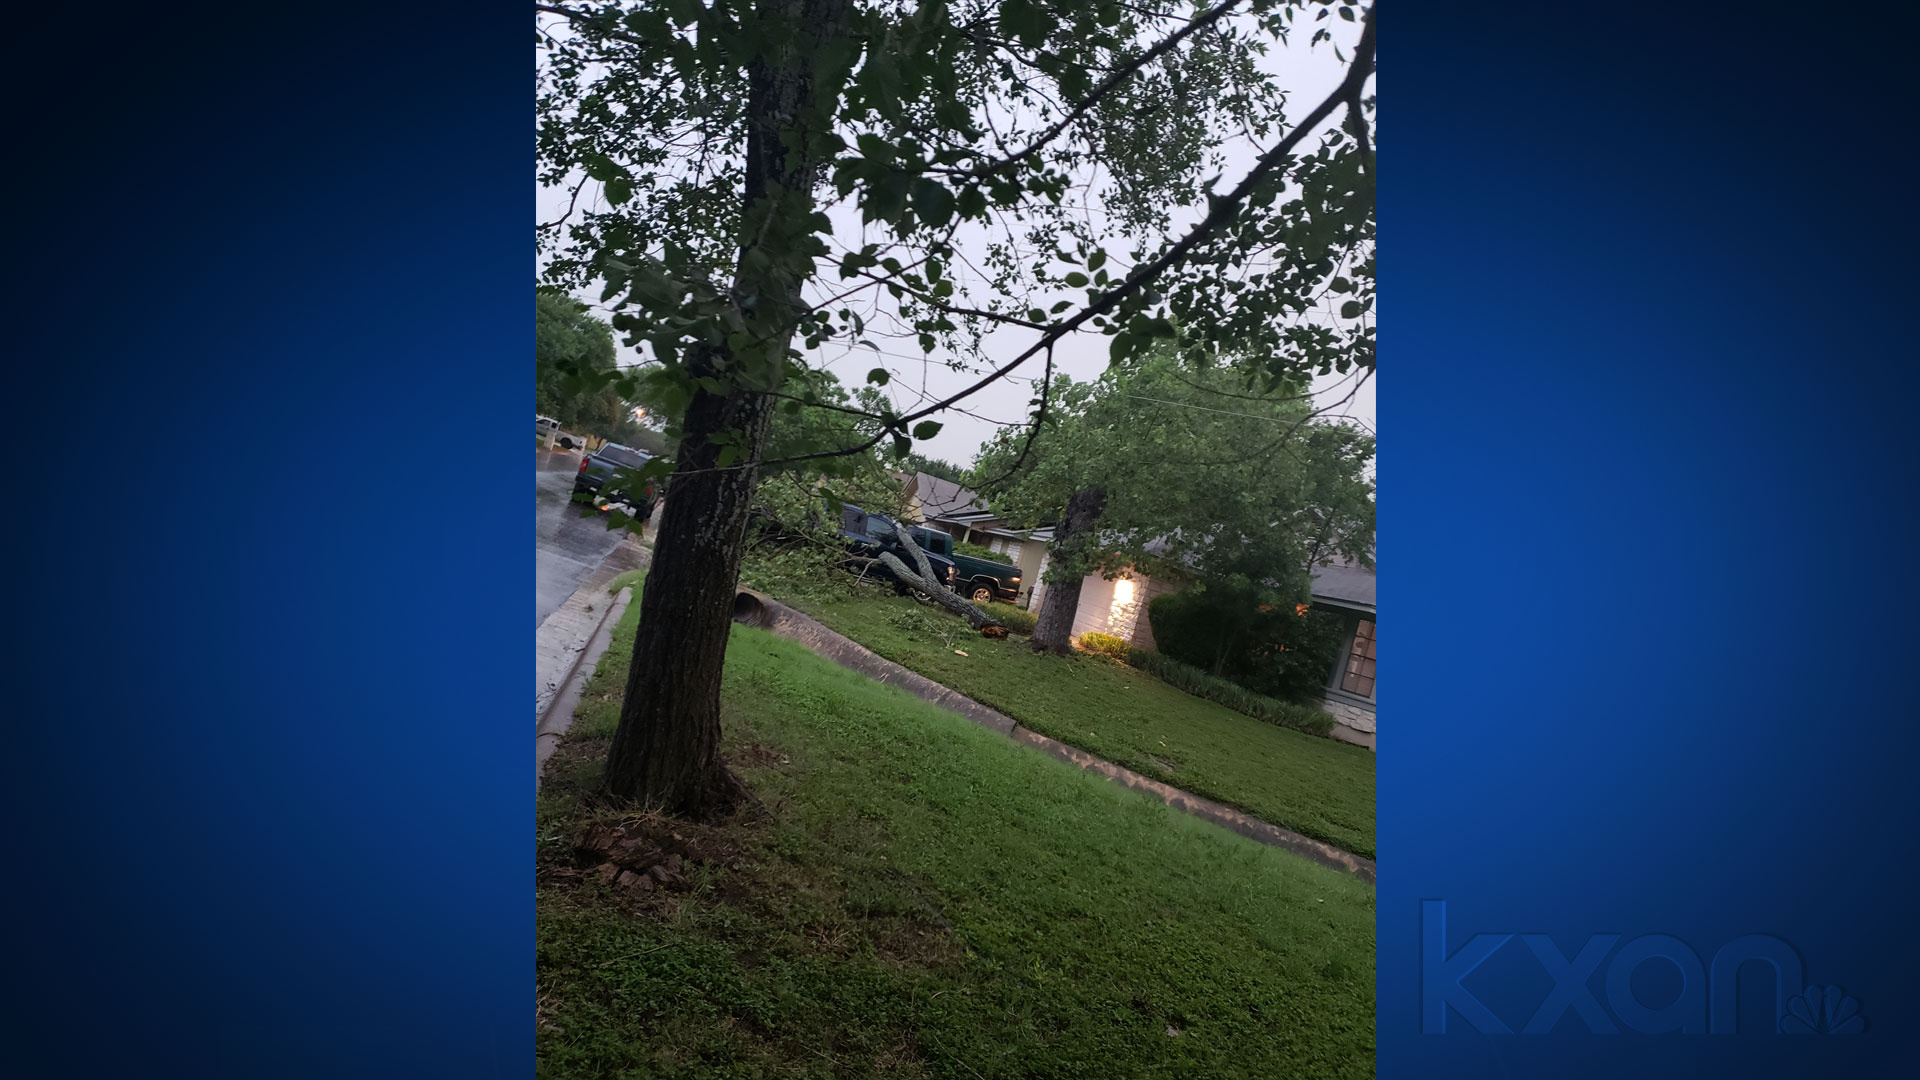 LIVE BLOG: Severe thunderstorms in Central Texas